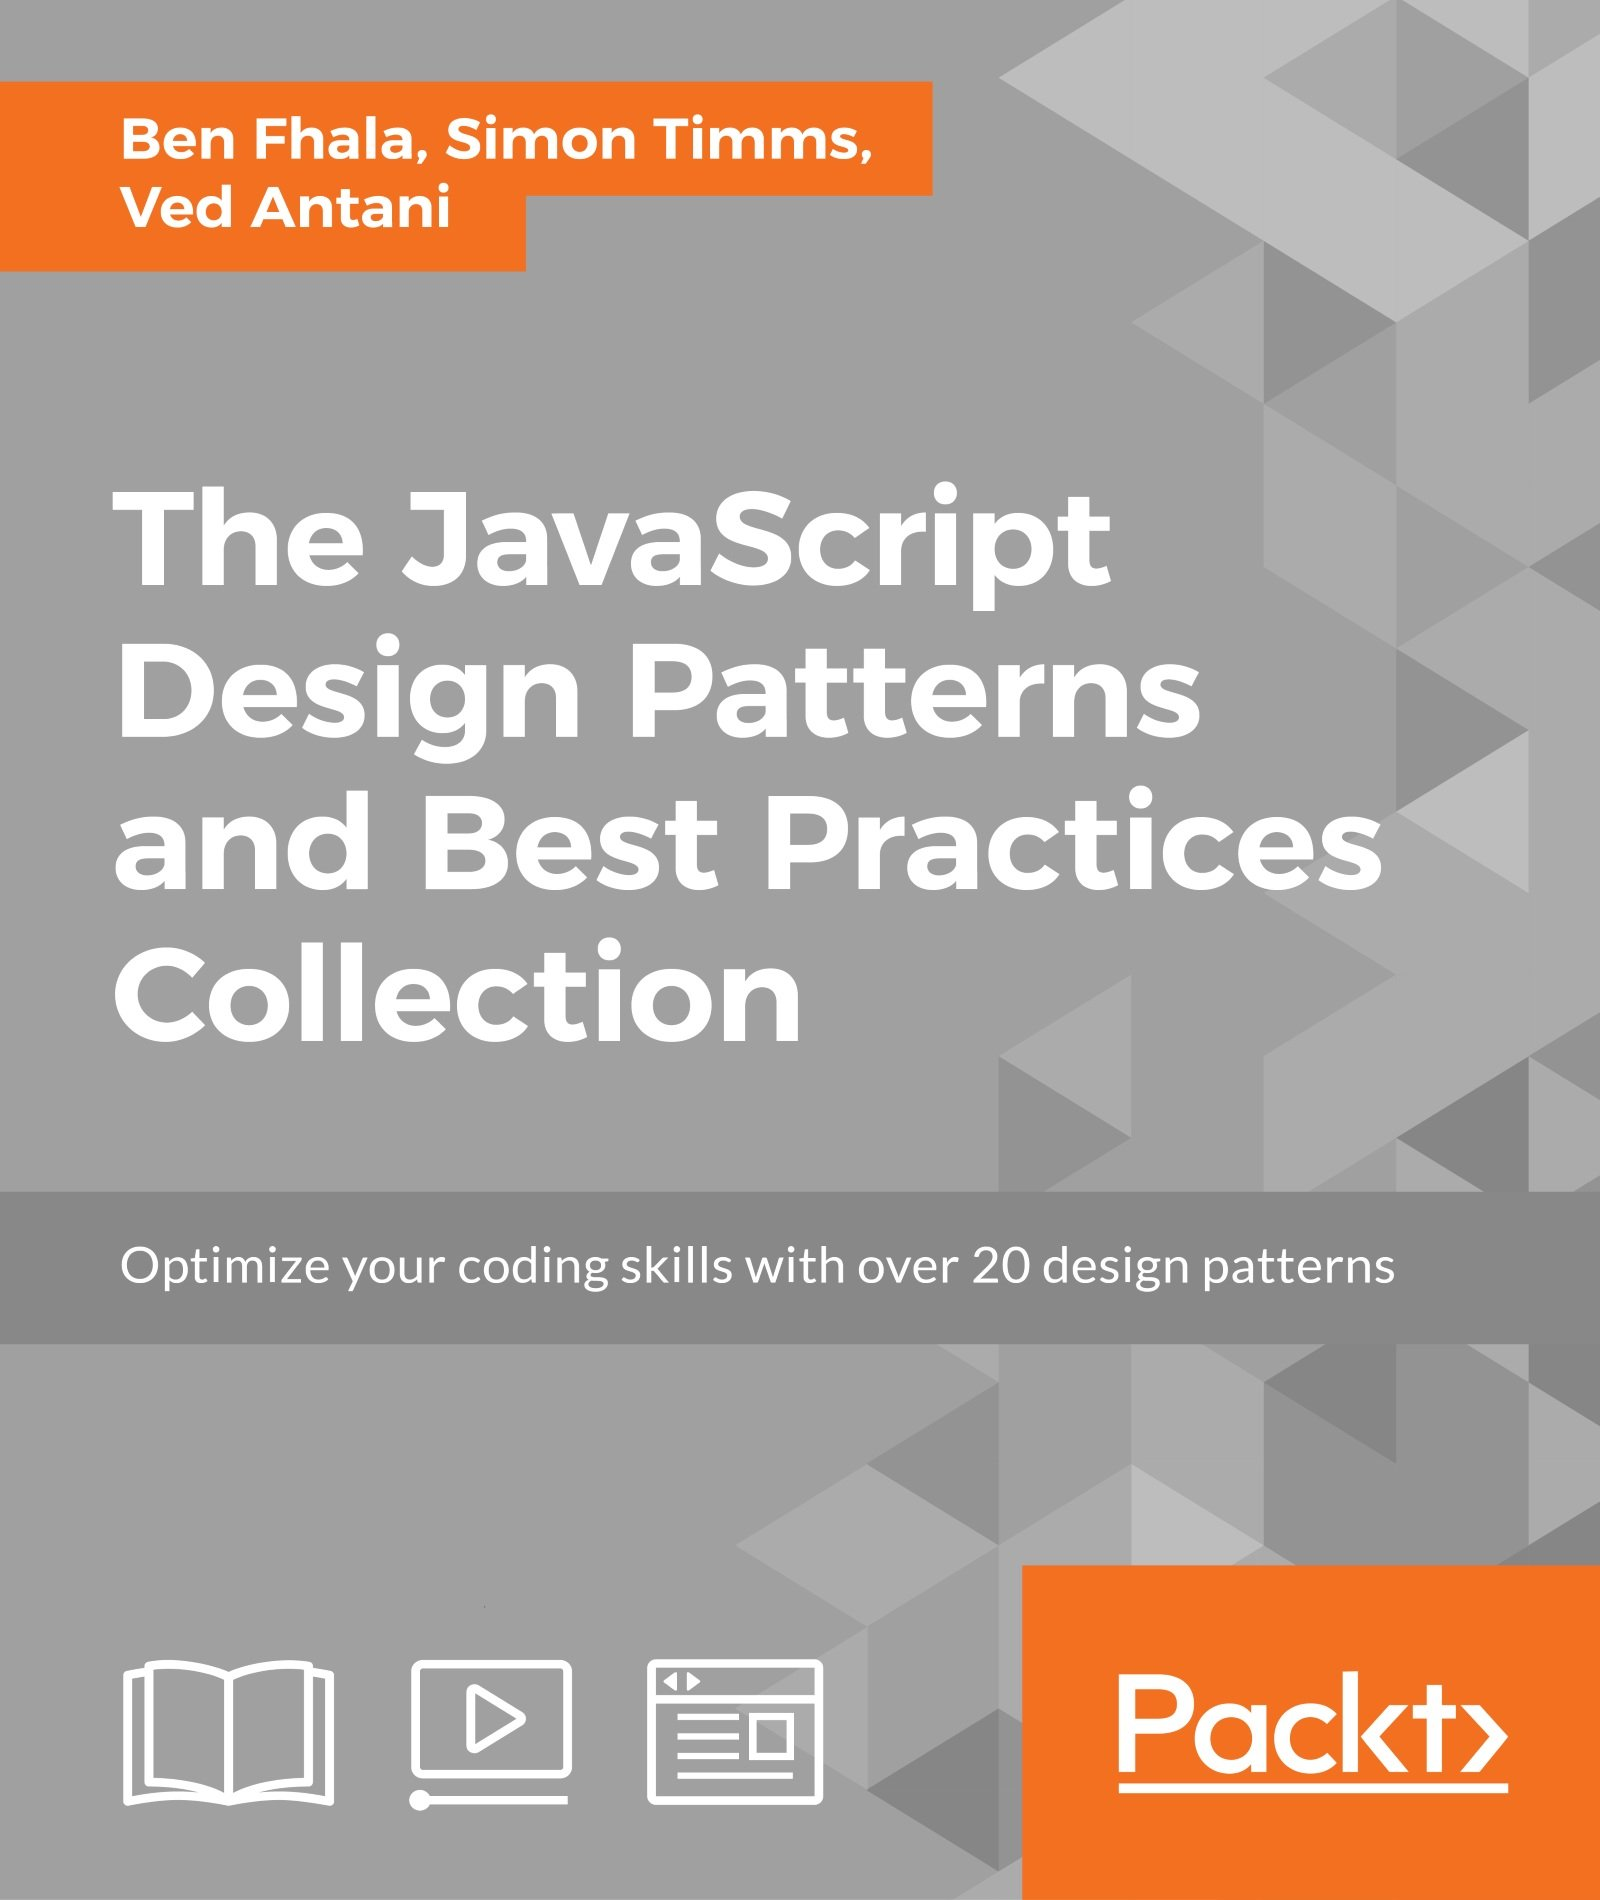 The JavaScript Design Patterns and Best Practices Collection